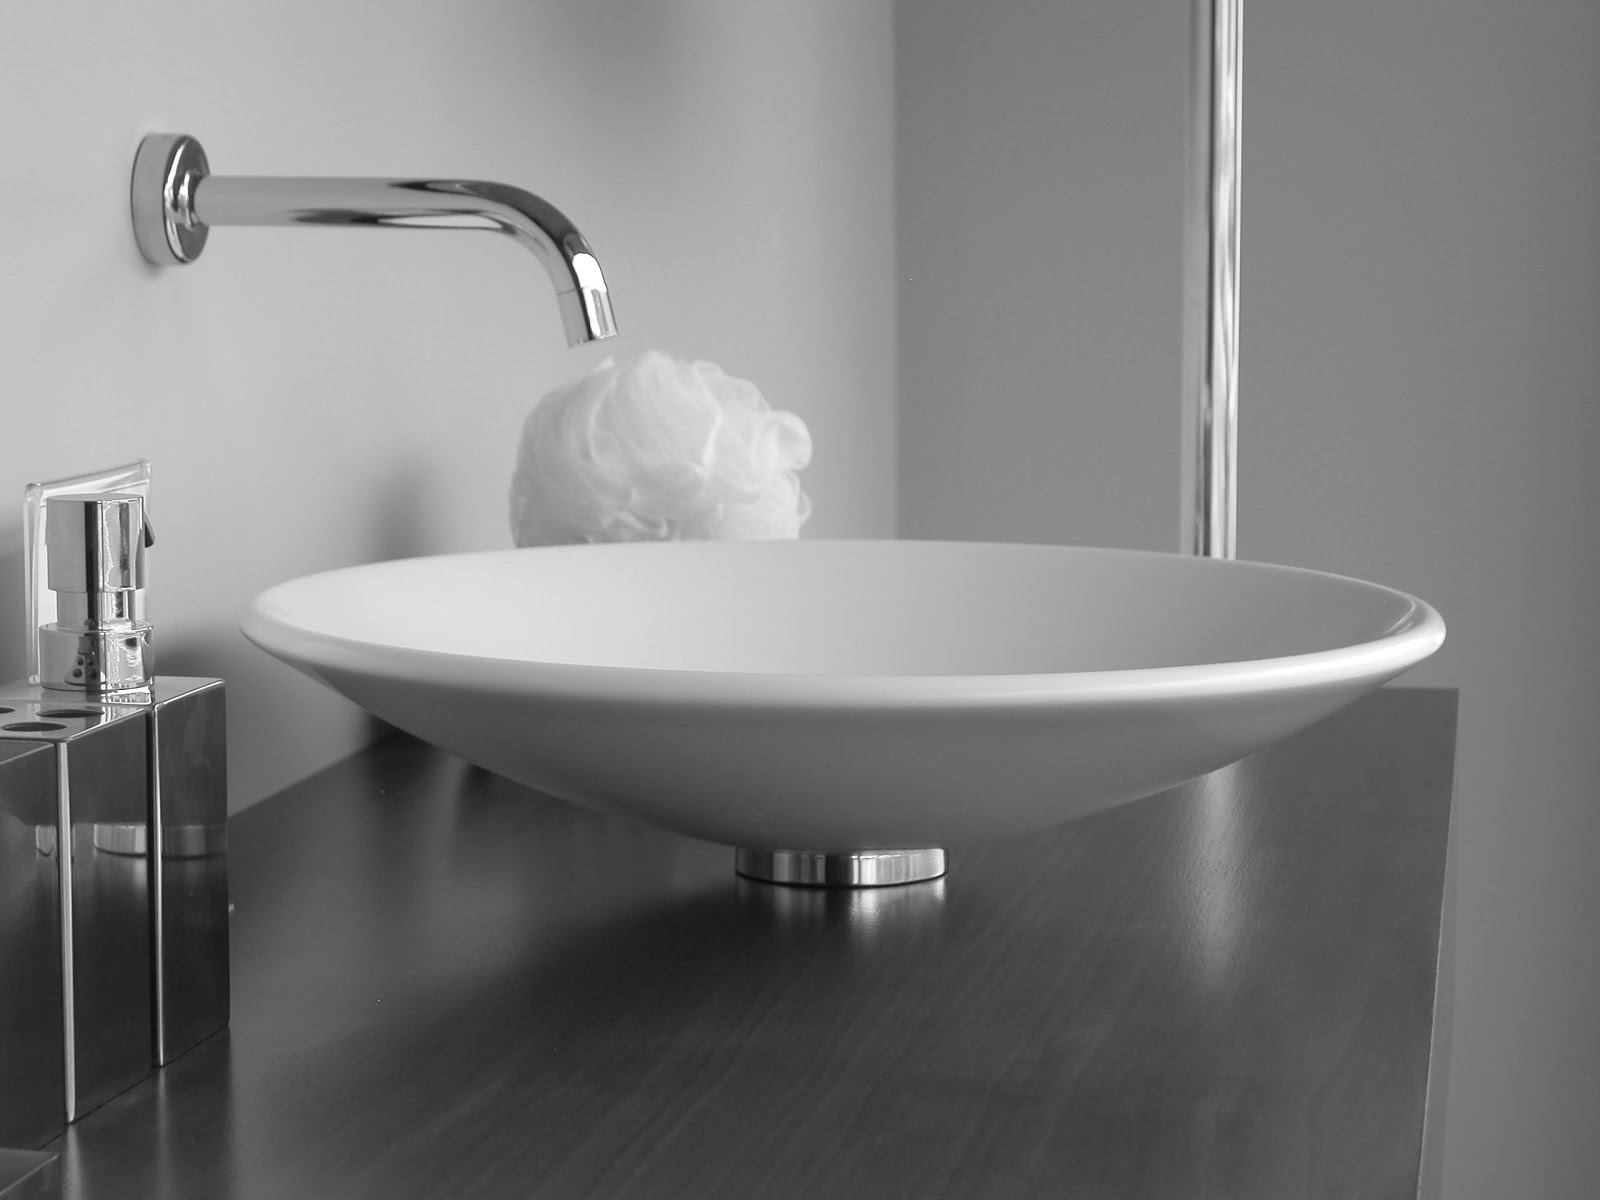 Minosa new minosa bathroom design resort style ensuite - The Kava Above Counter Basin Made With Corian By Minosa